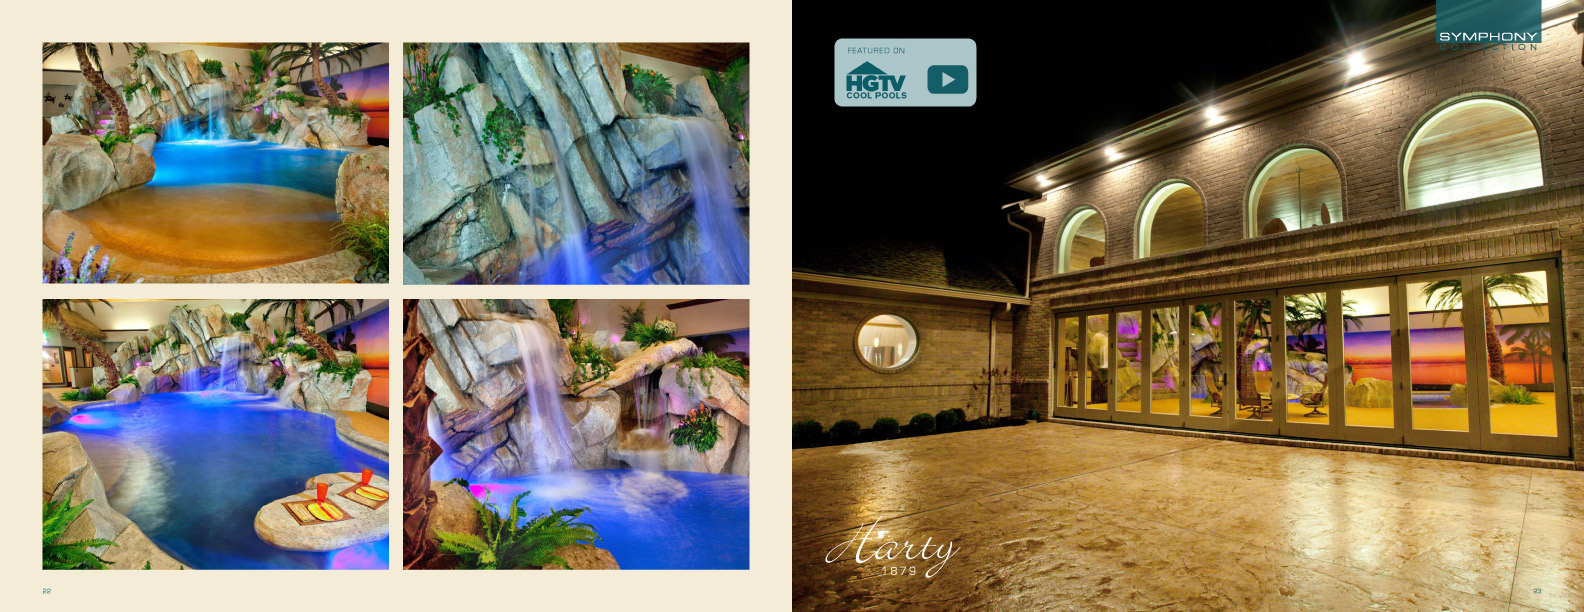 Shehan-Pools-Brochure-12